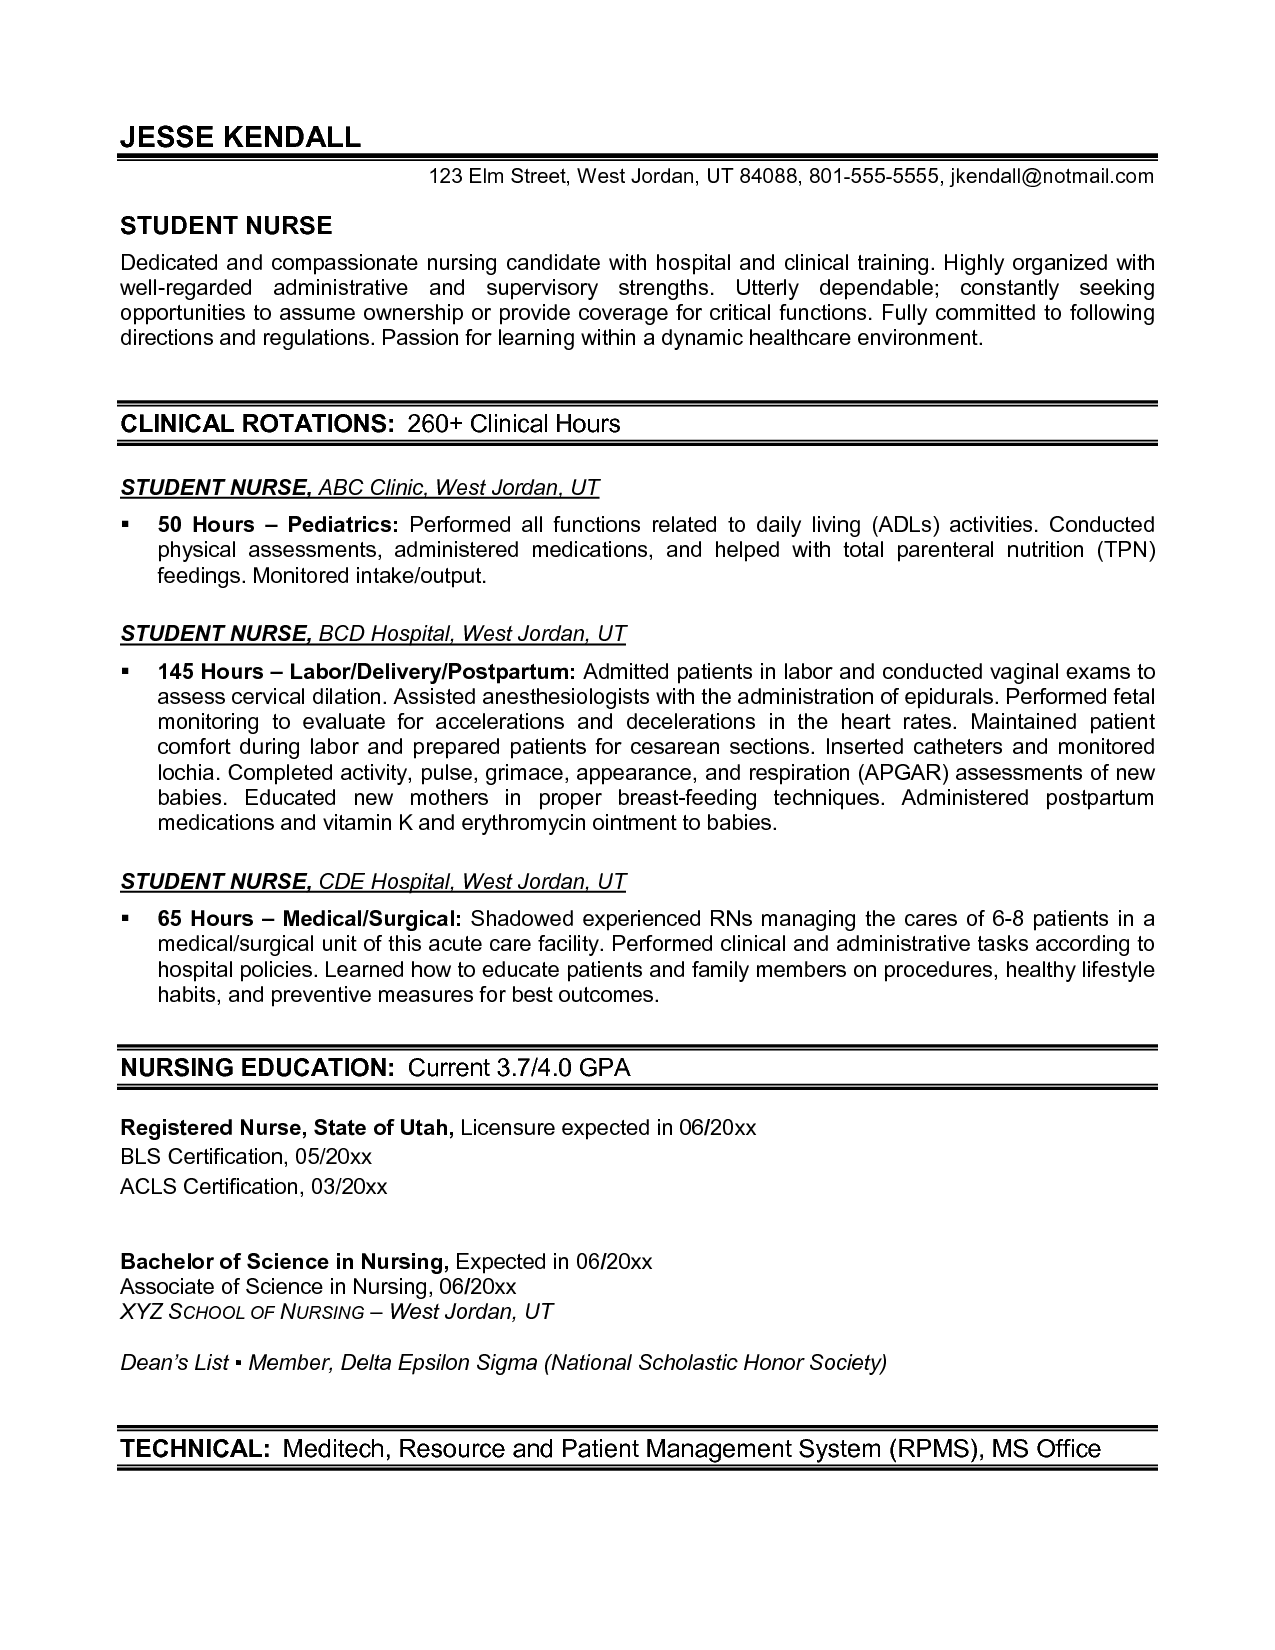 Resume Template Nursing Nursing Pinterest Nursing Resume